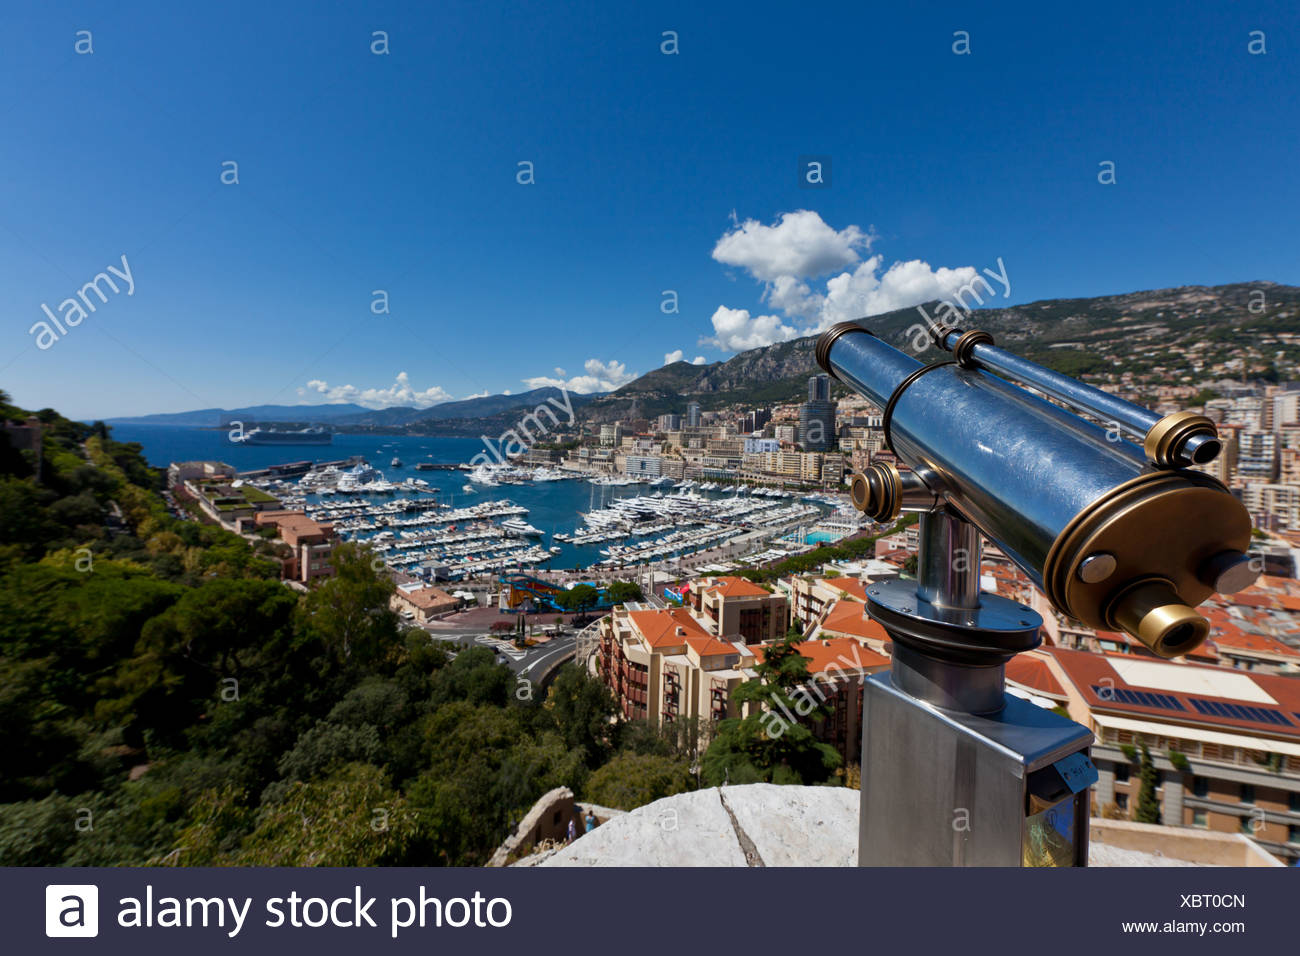 Telescope overlooking the harbour of Monaco, Port Hercule, Monte Carlo, Principality of Monaco, Côte d'Azur, Mediterranean Sea - Stock Image